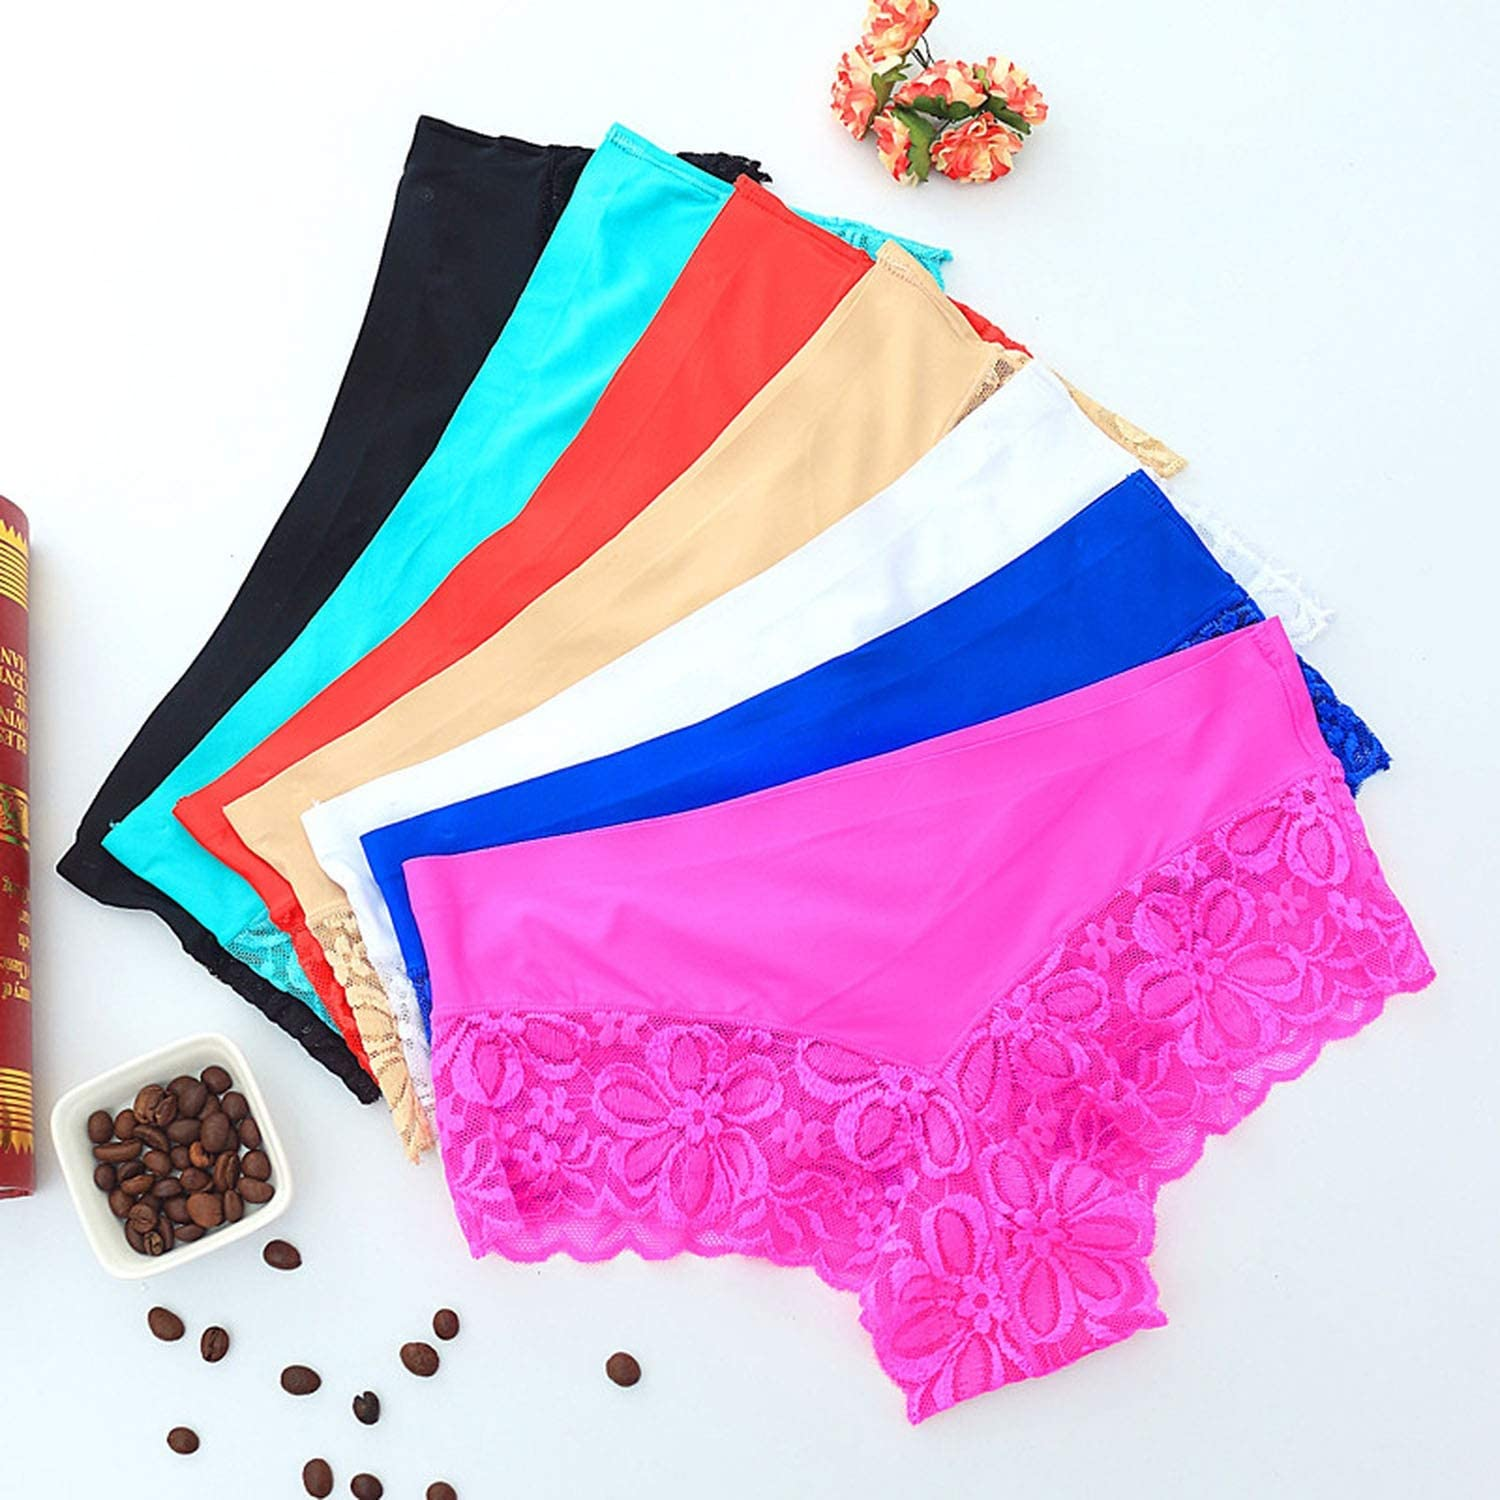 Summer Thin Lace Panties Underwear Women See Through Comfortable Shorts Women Female Intimates Boxers Boyshorts